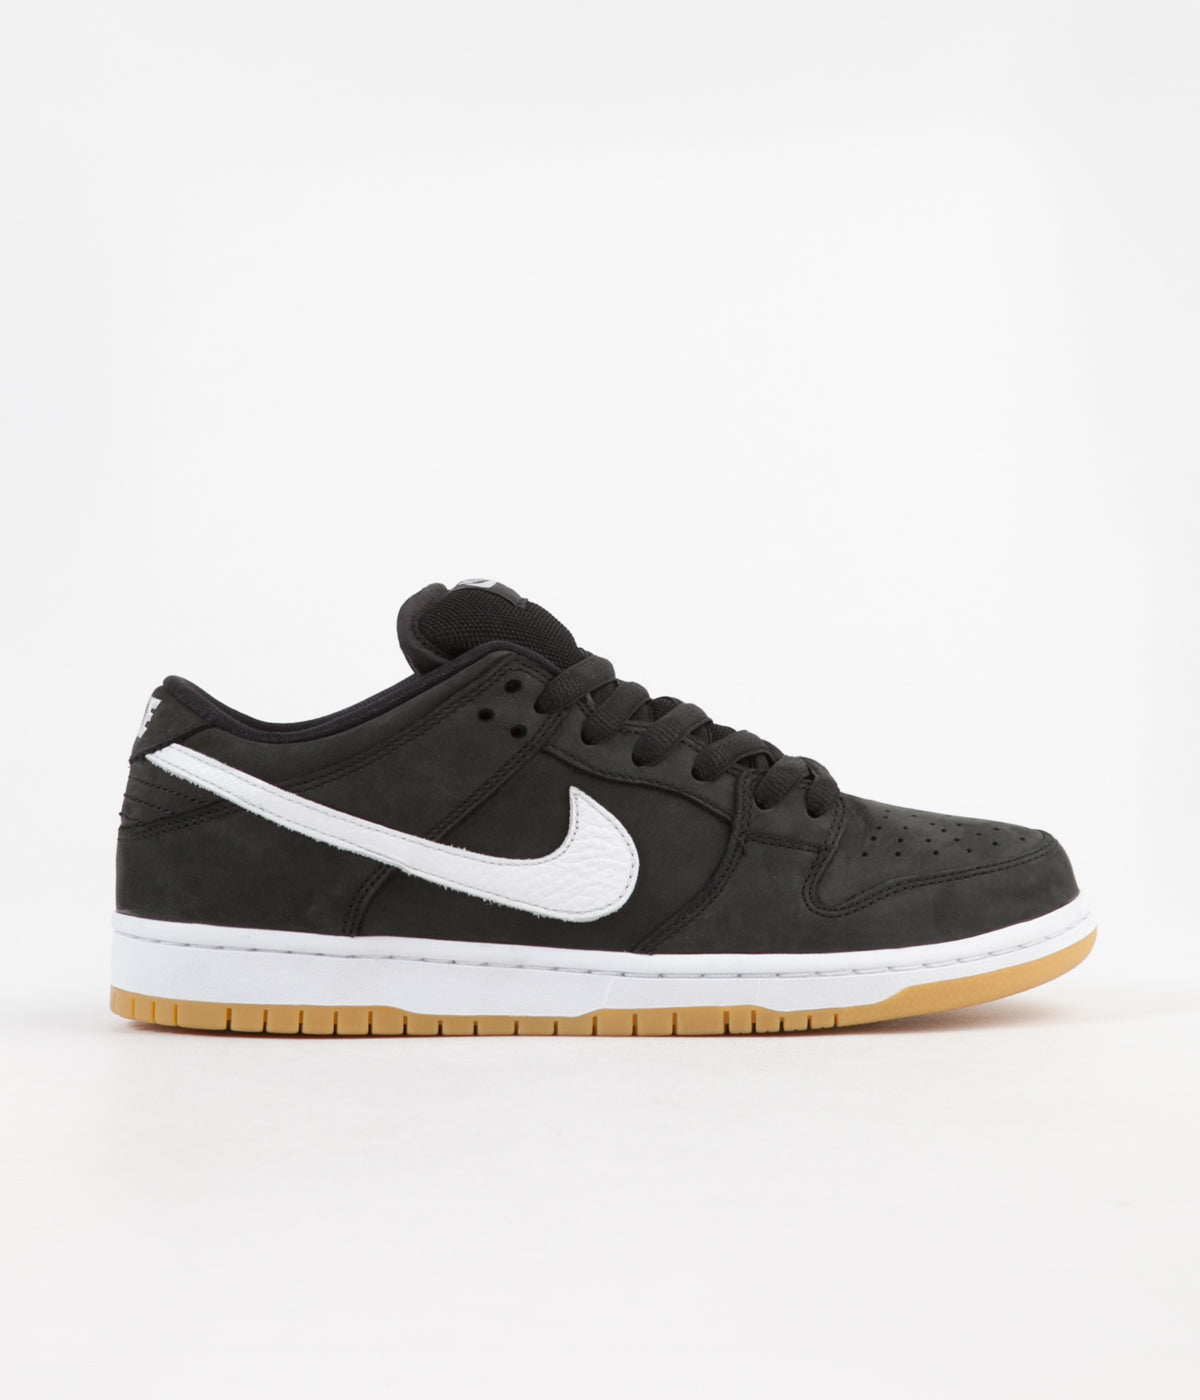 new styles 78732 8bcef where can i buy nike dunk low skate chaussures f9f46 bfb0a